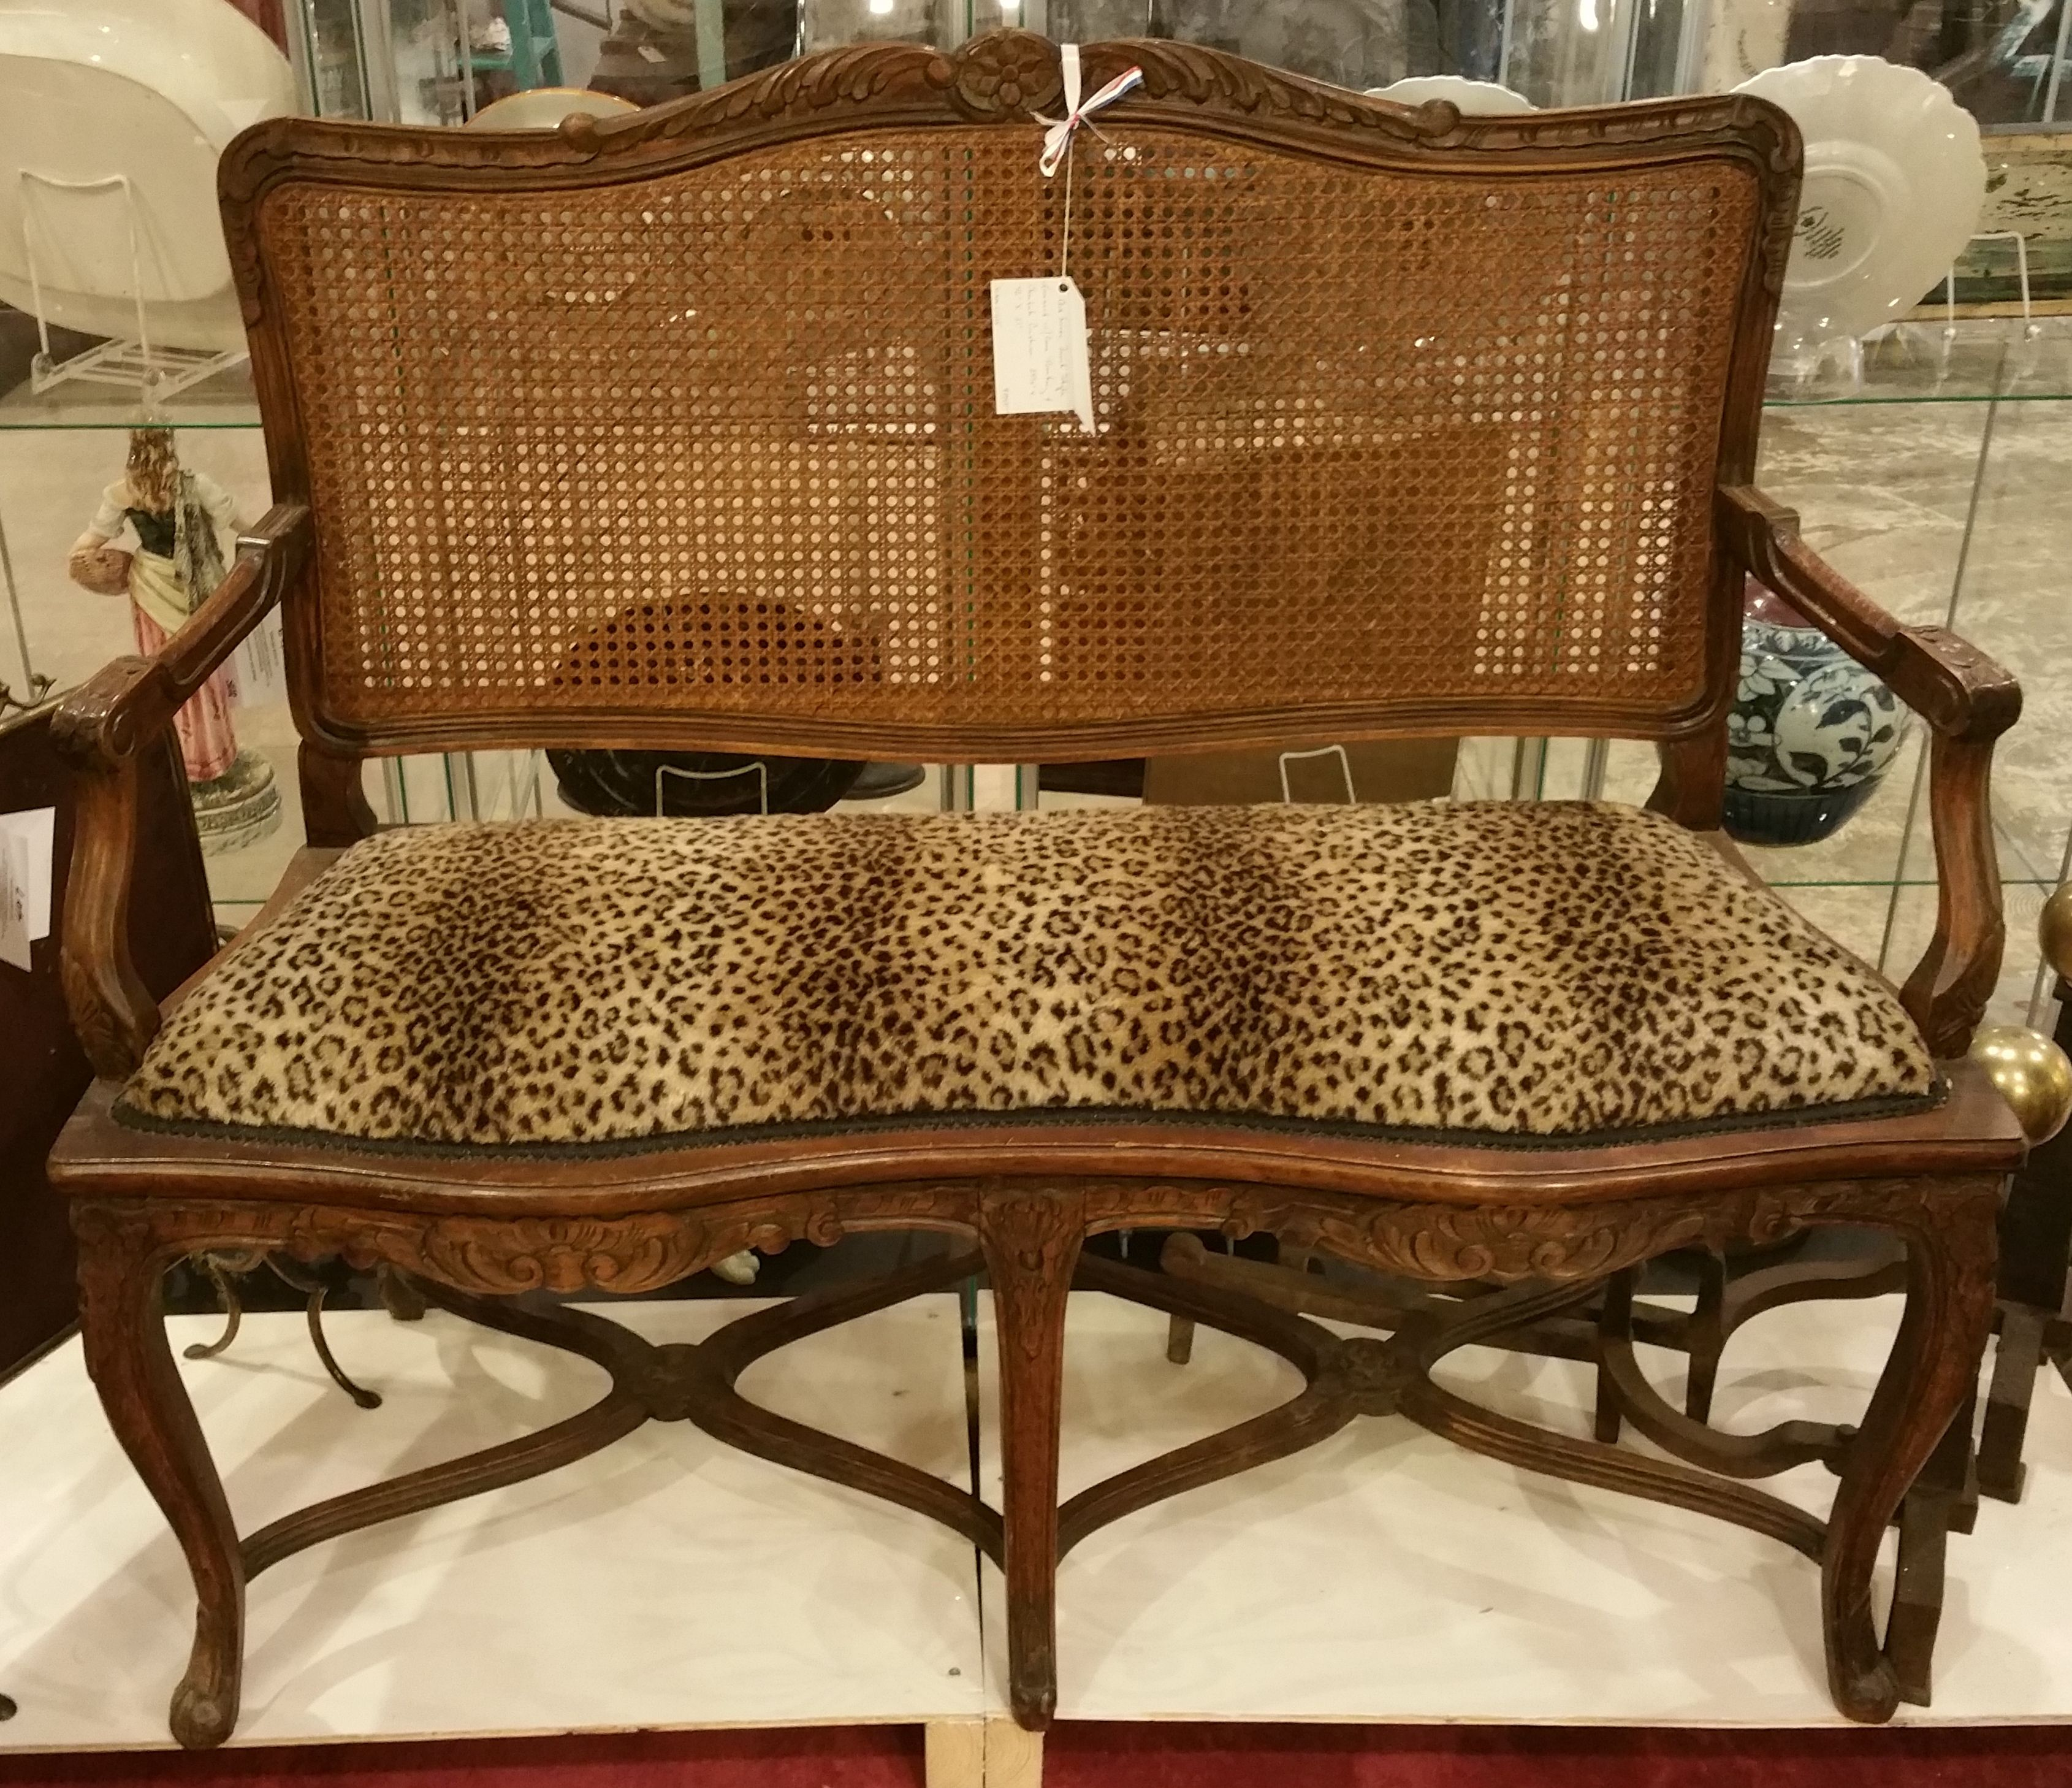 "From b407, An Unusual French Style Loveseat with Cane Backing and a Cheetah Cushion, (39"" x 46"" x 21"") $1750.00"